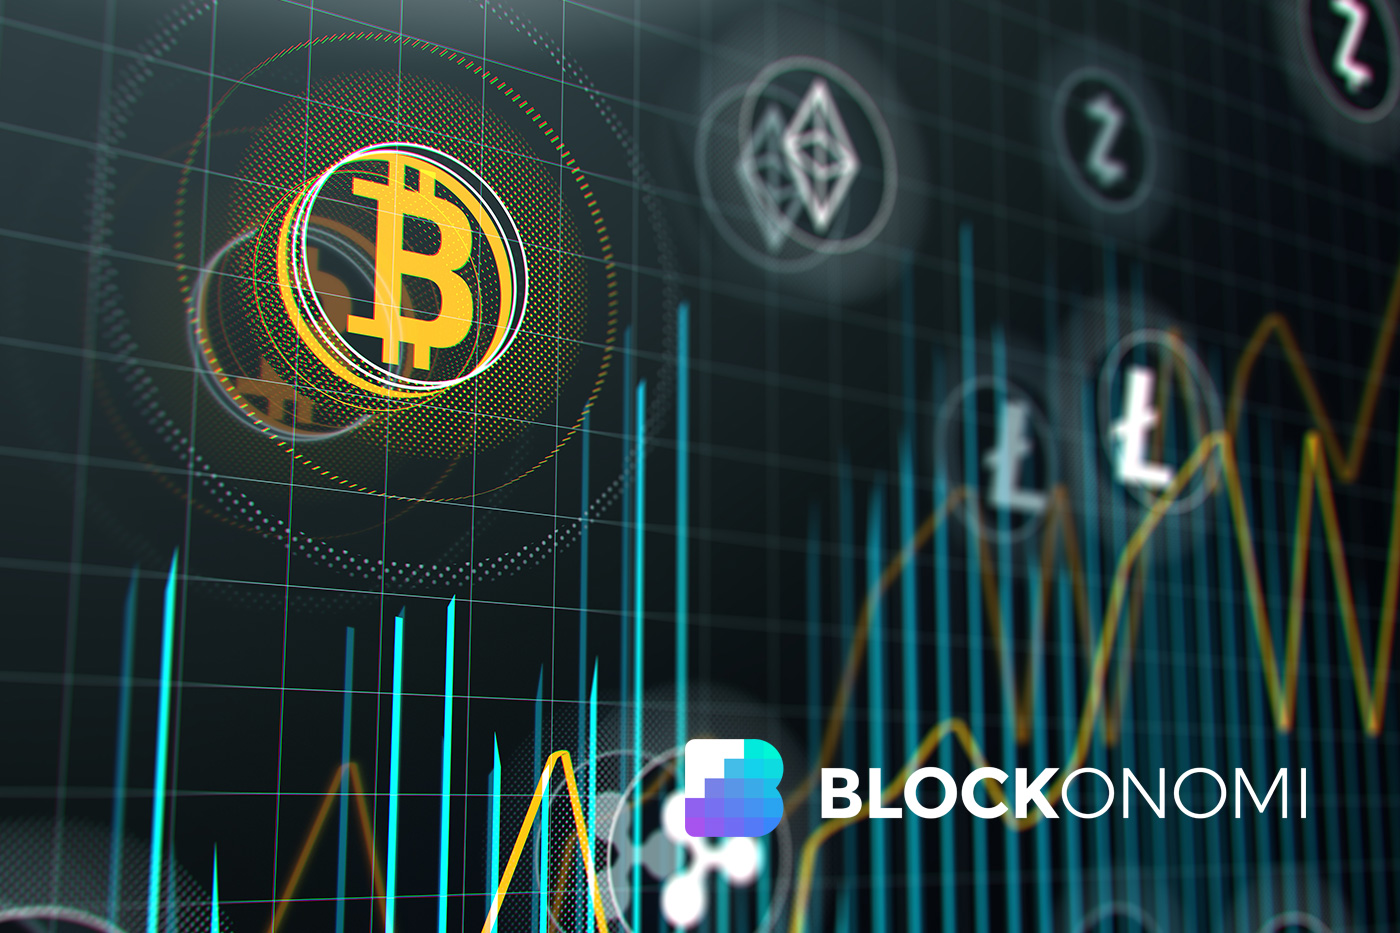 Mainstream Exchange Cboe Reconsidering Its Bitcoin Futures Offering